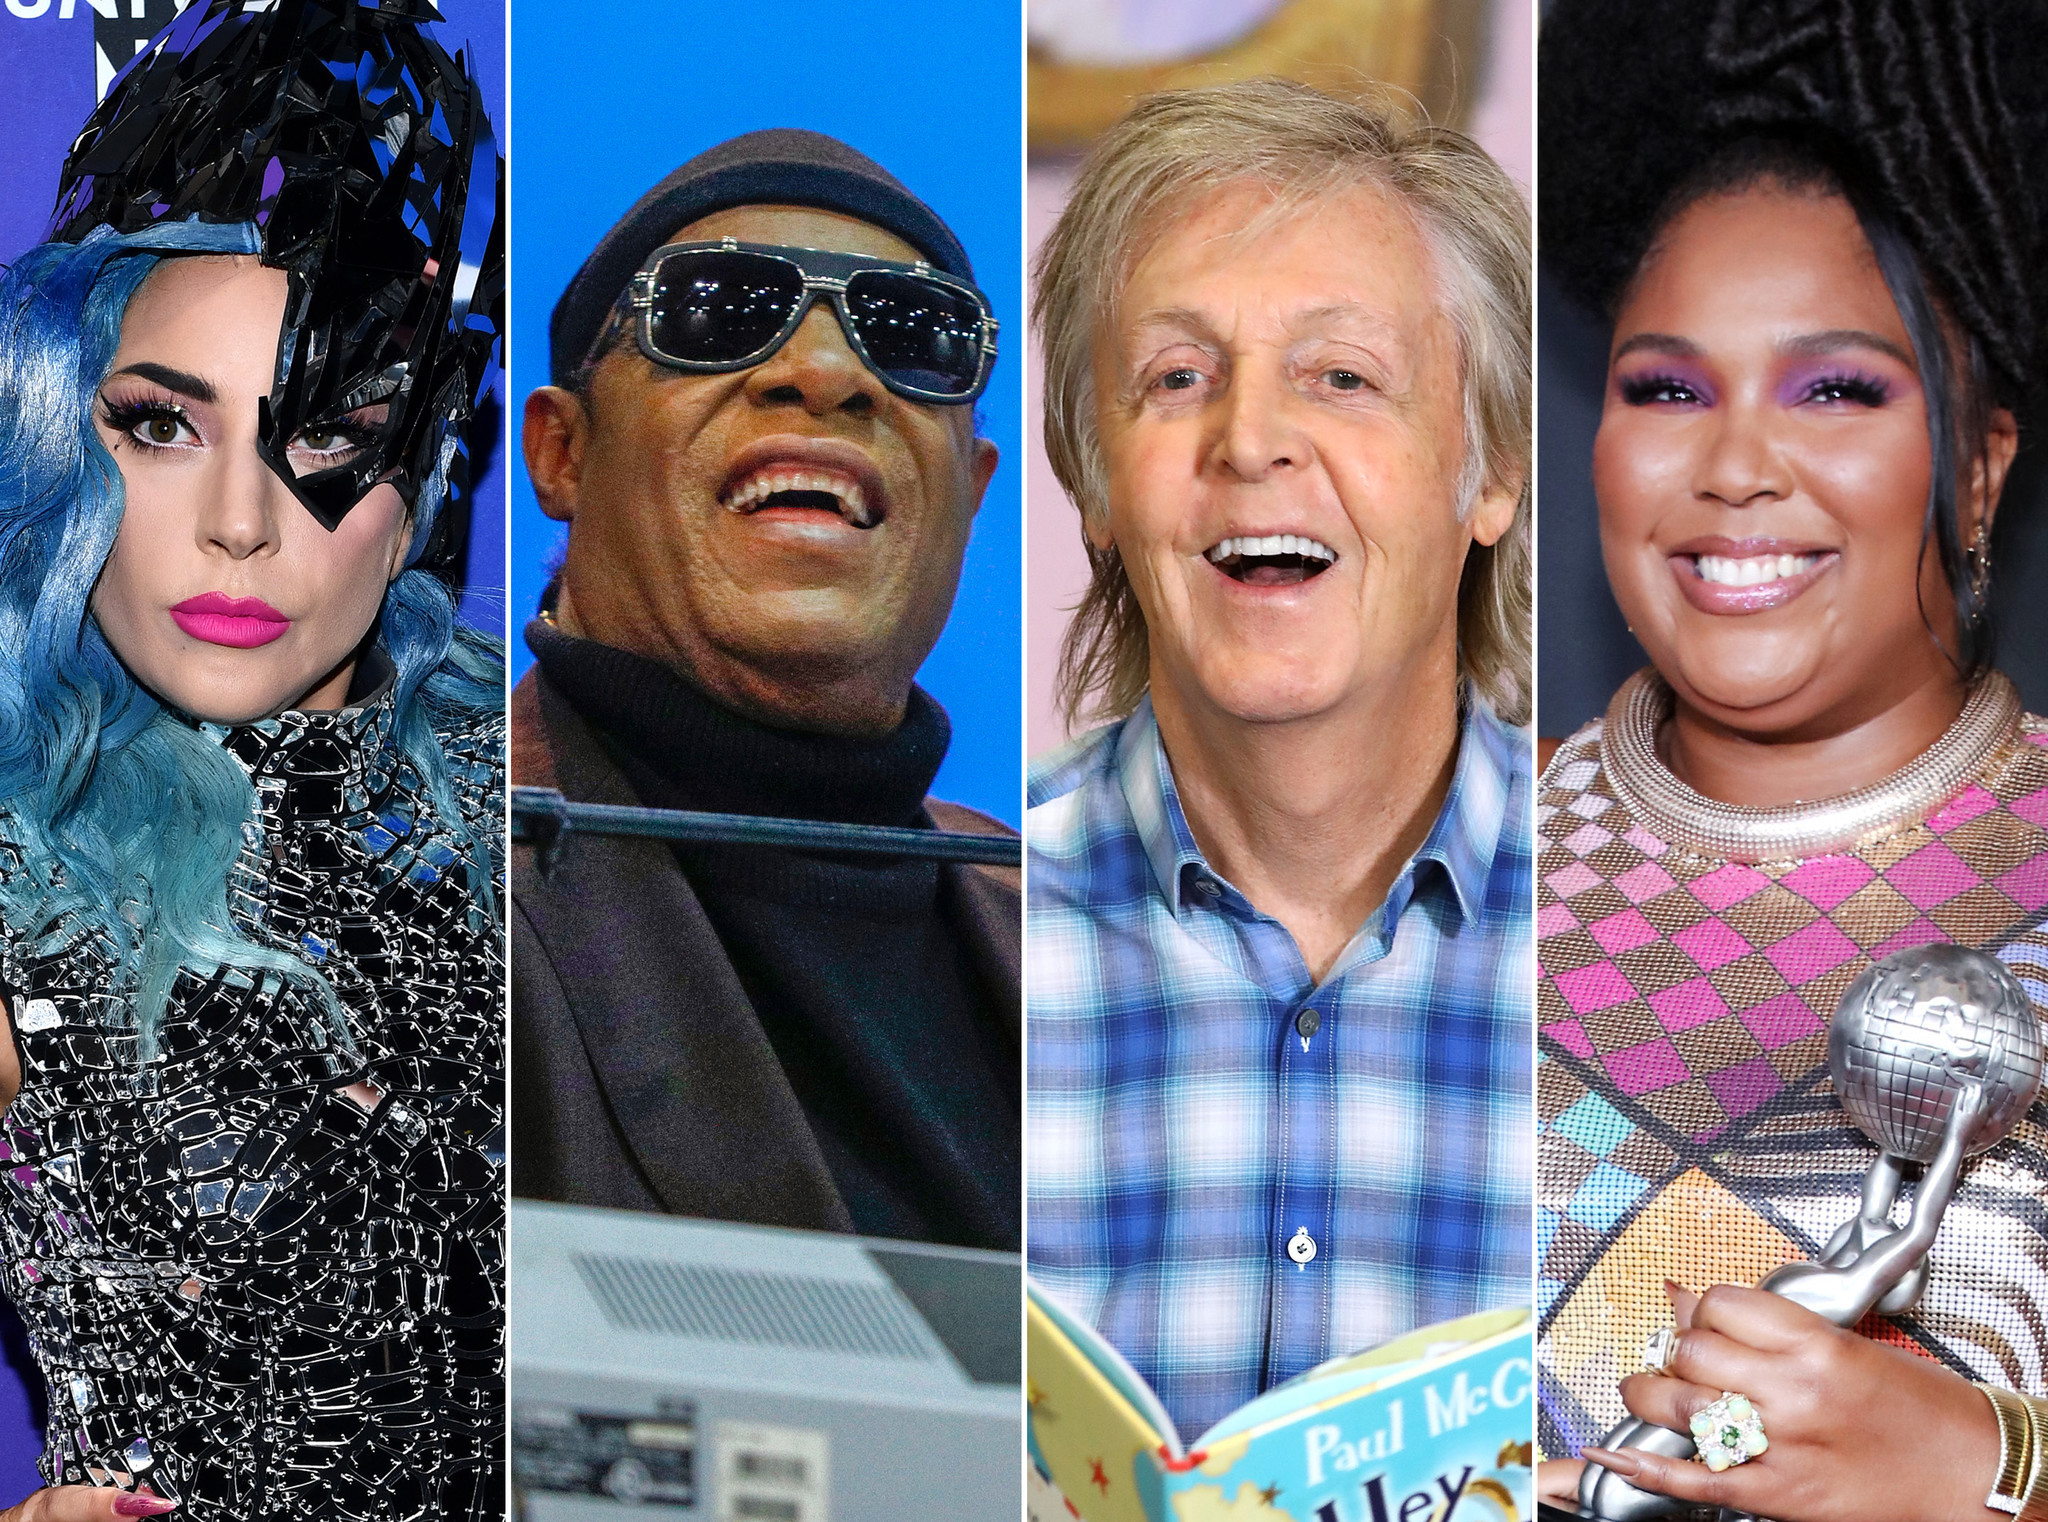 Lady Gaga, Stevie Wonder, Paul McCartney and Lizzo among star-studded lineup of 'One World: Together at Home' television special